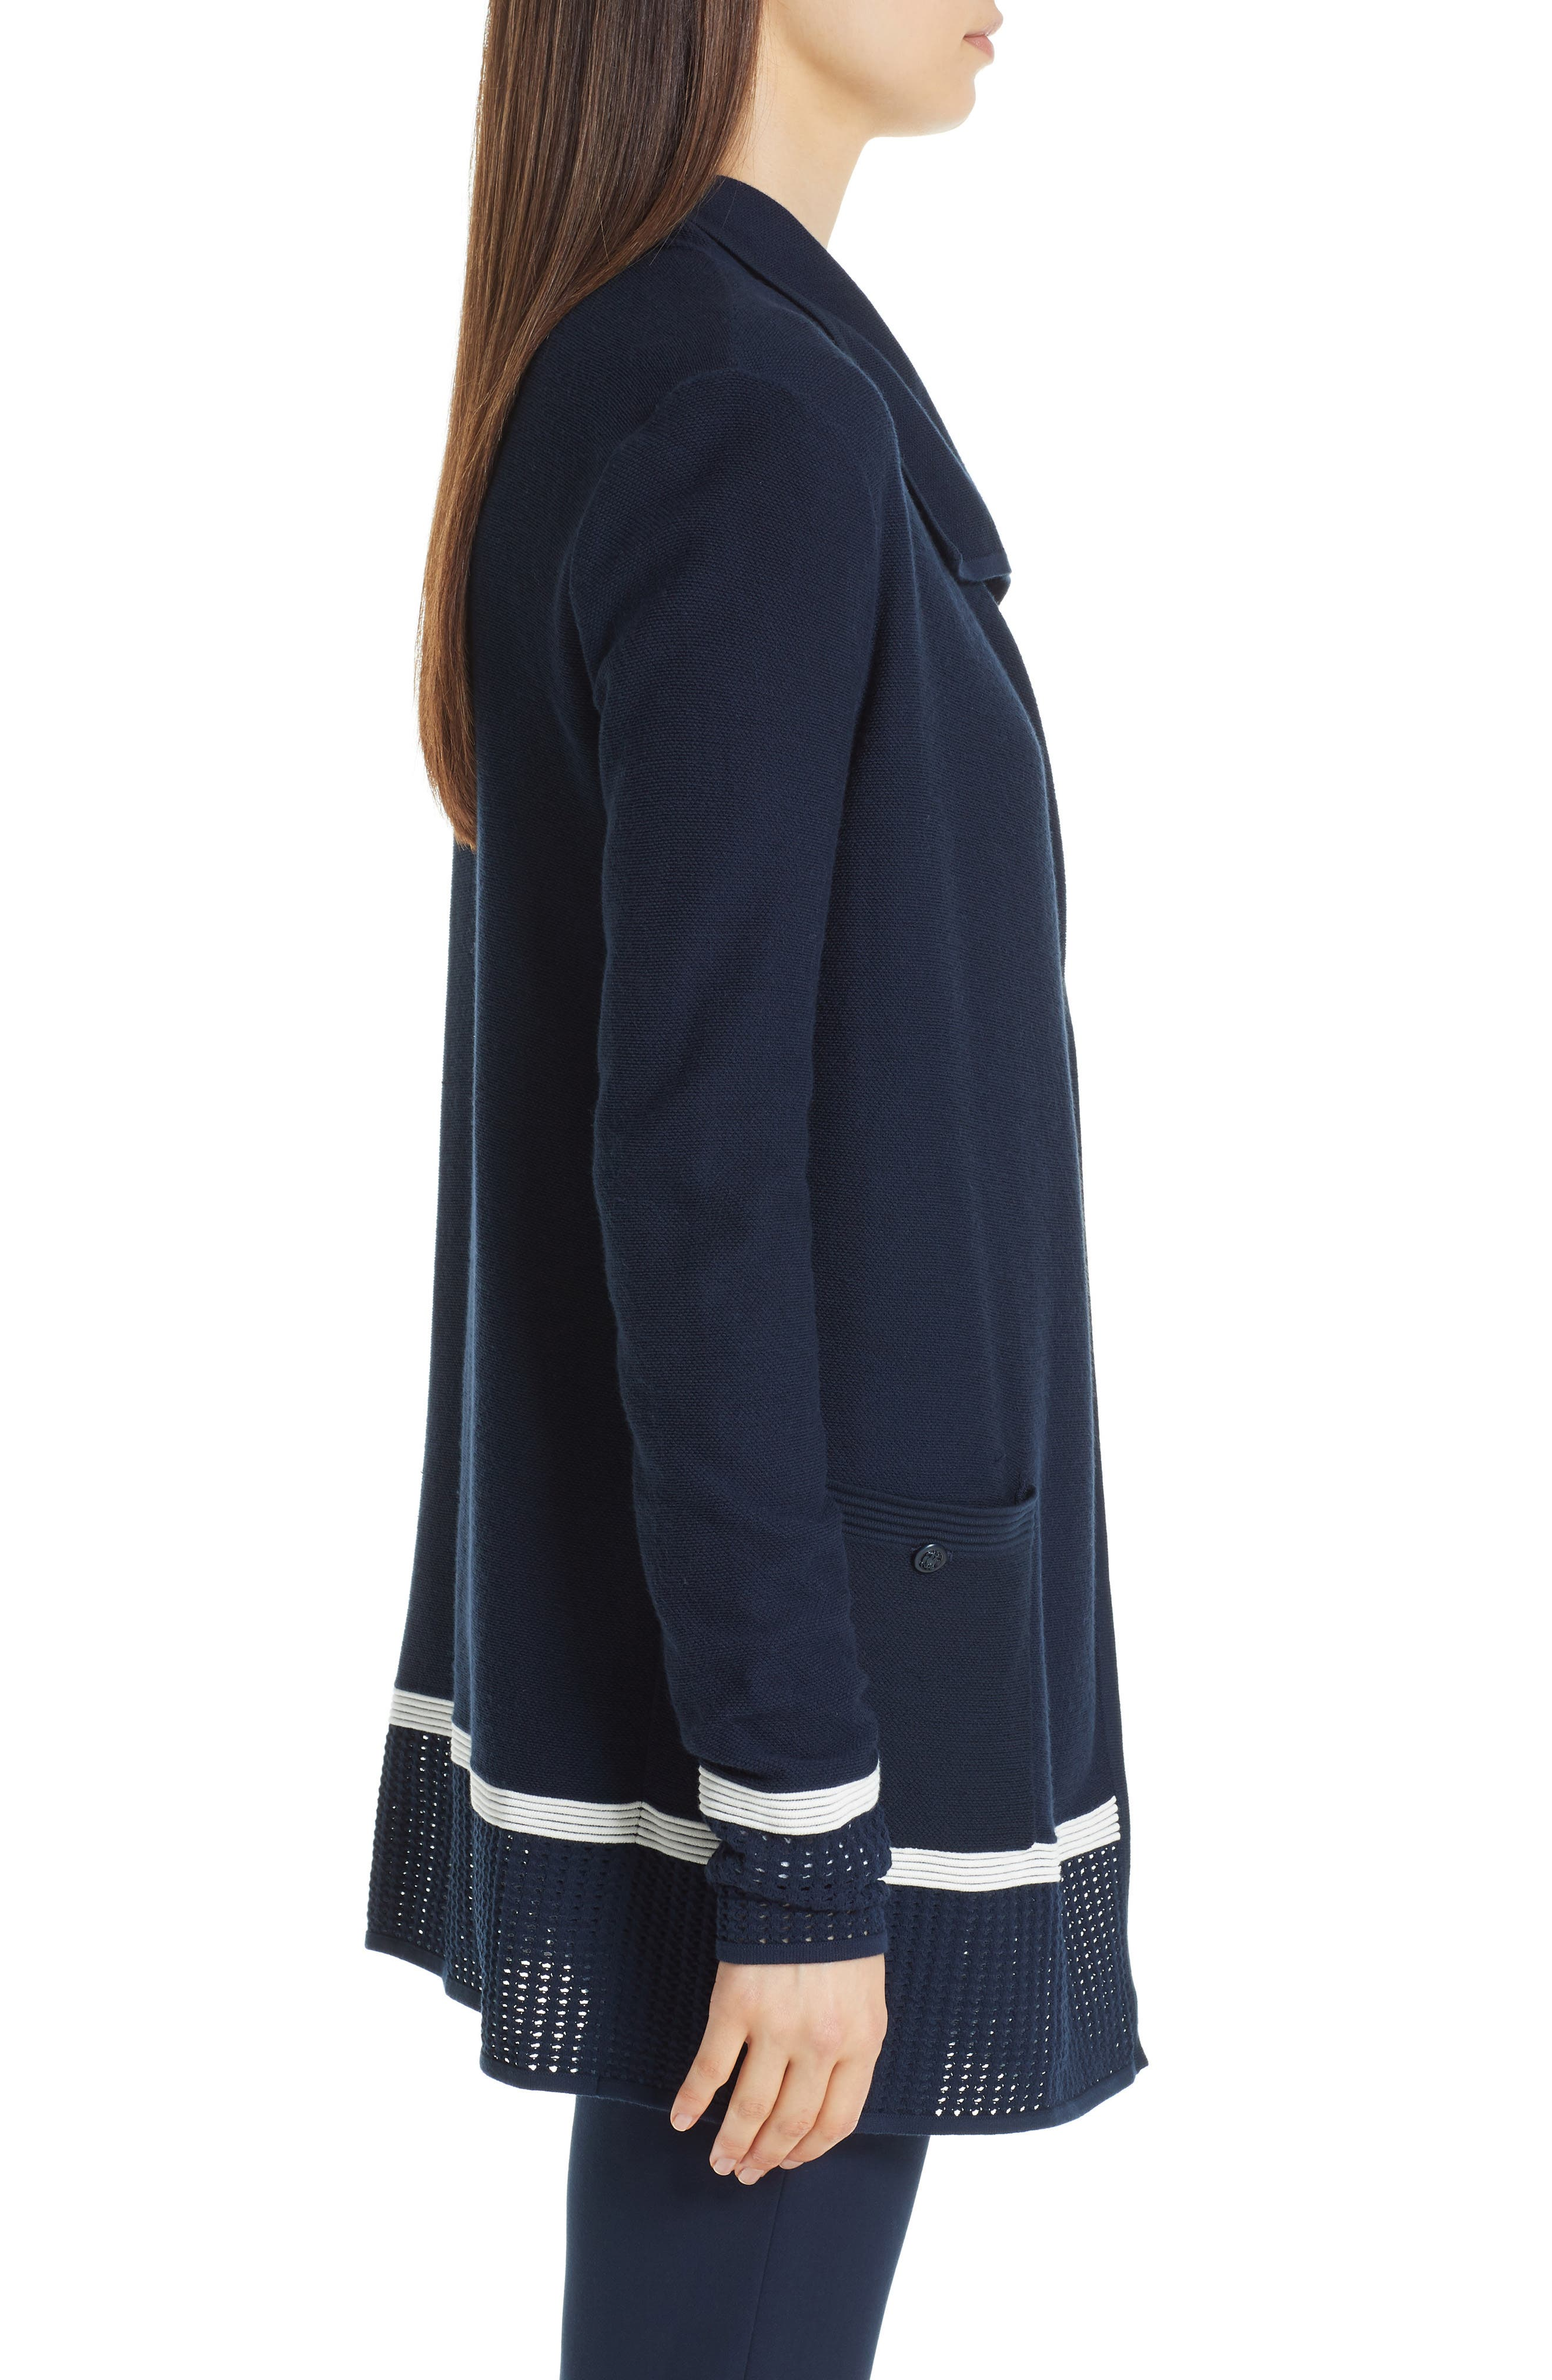 ST. JOHN COLLECTION,                             Mesh Trim Cardigan,                             Alternate thumbnail 3, color,                             NAVY/ CREAM